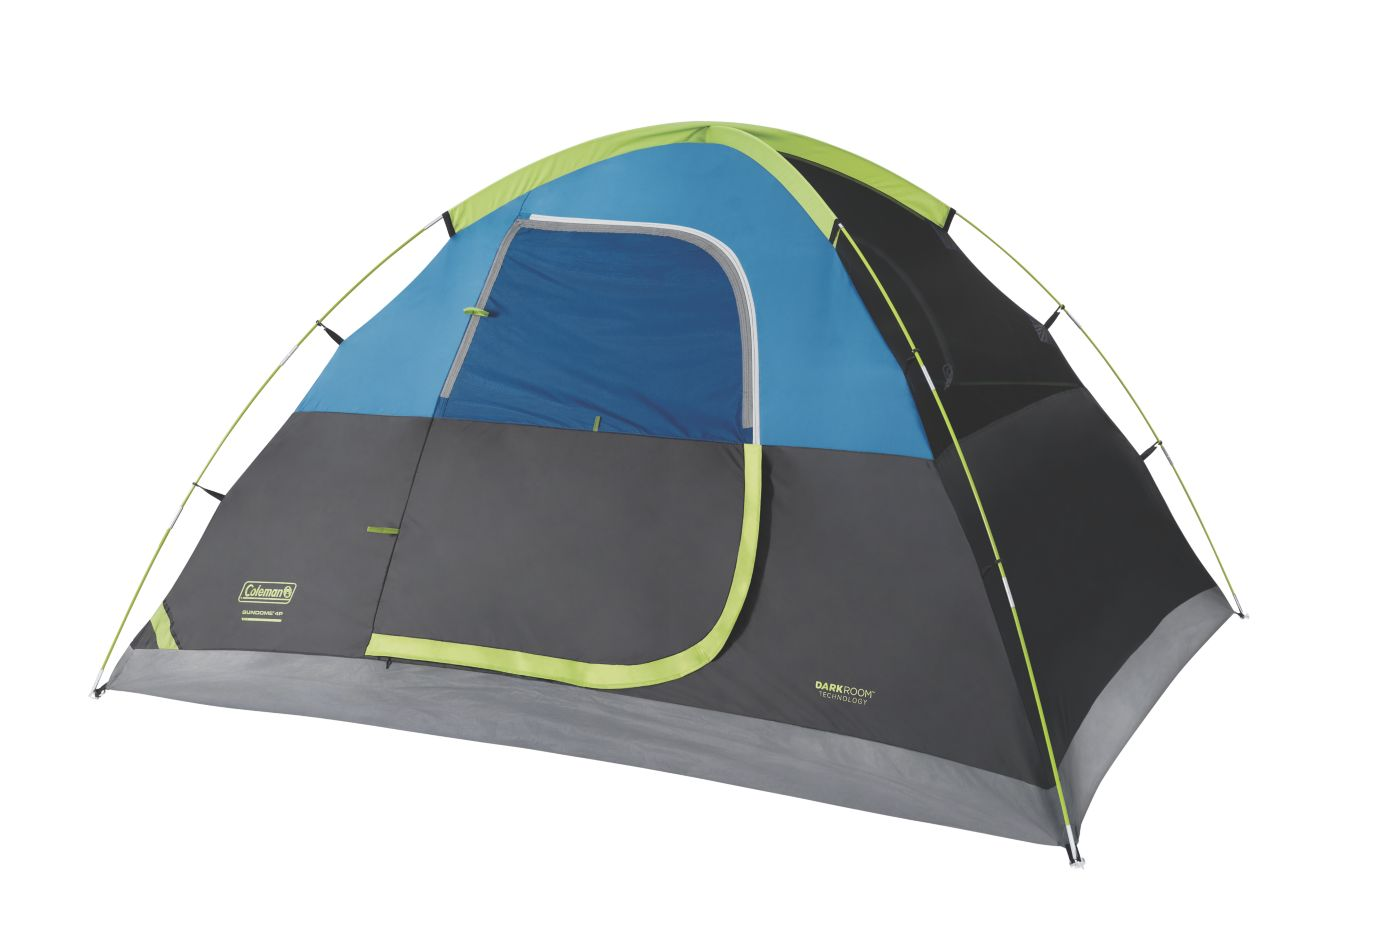 4-Person Dark Room Sundome Tent  sc 1 st  Coleman : timber ridge tent - memphite.com